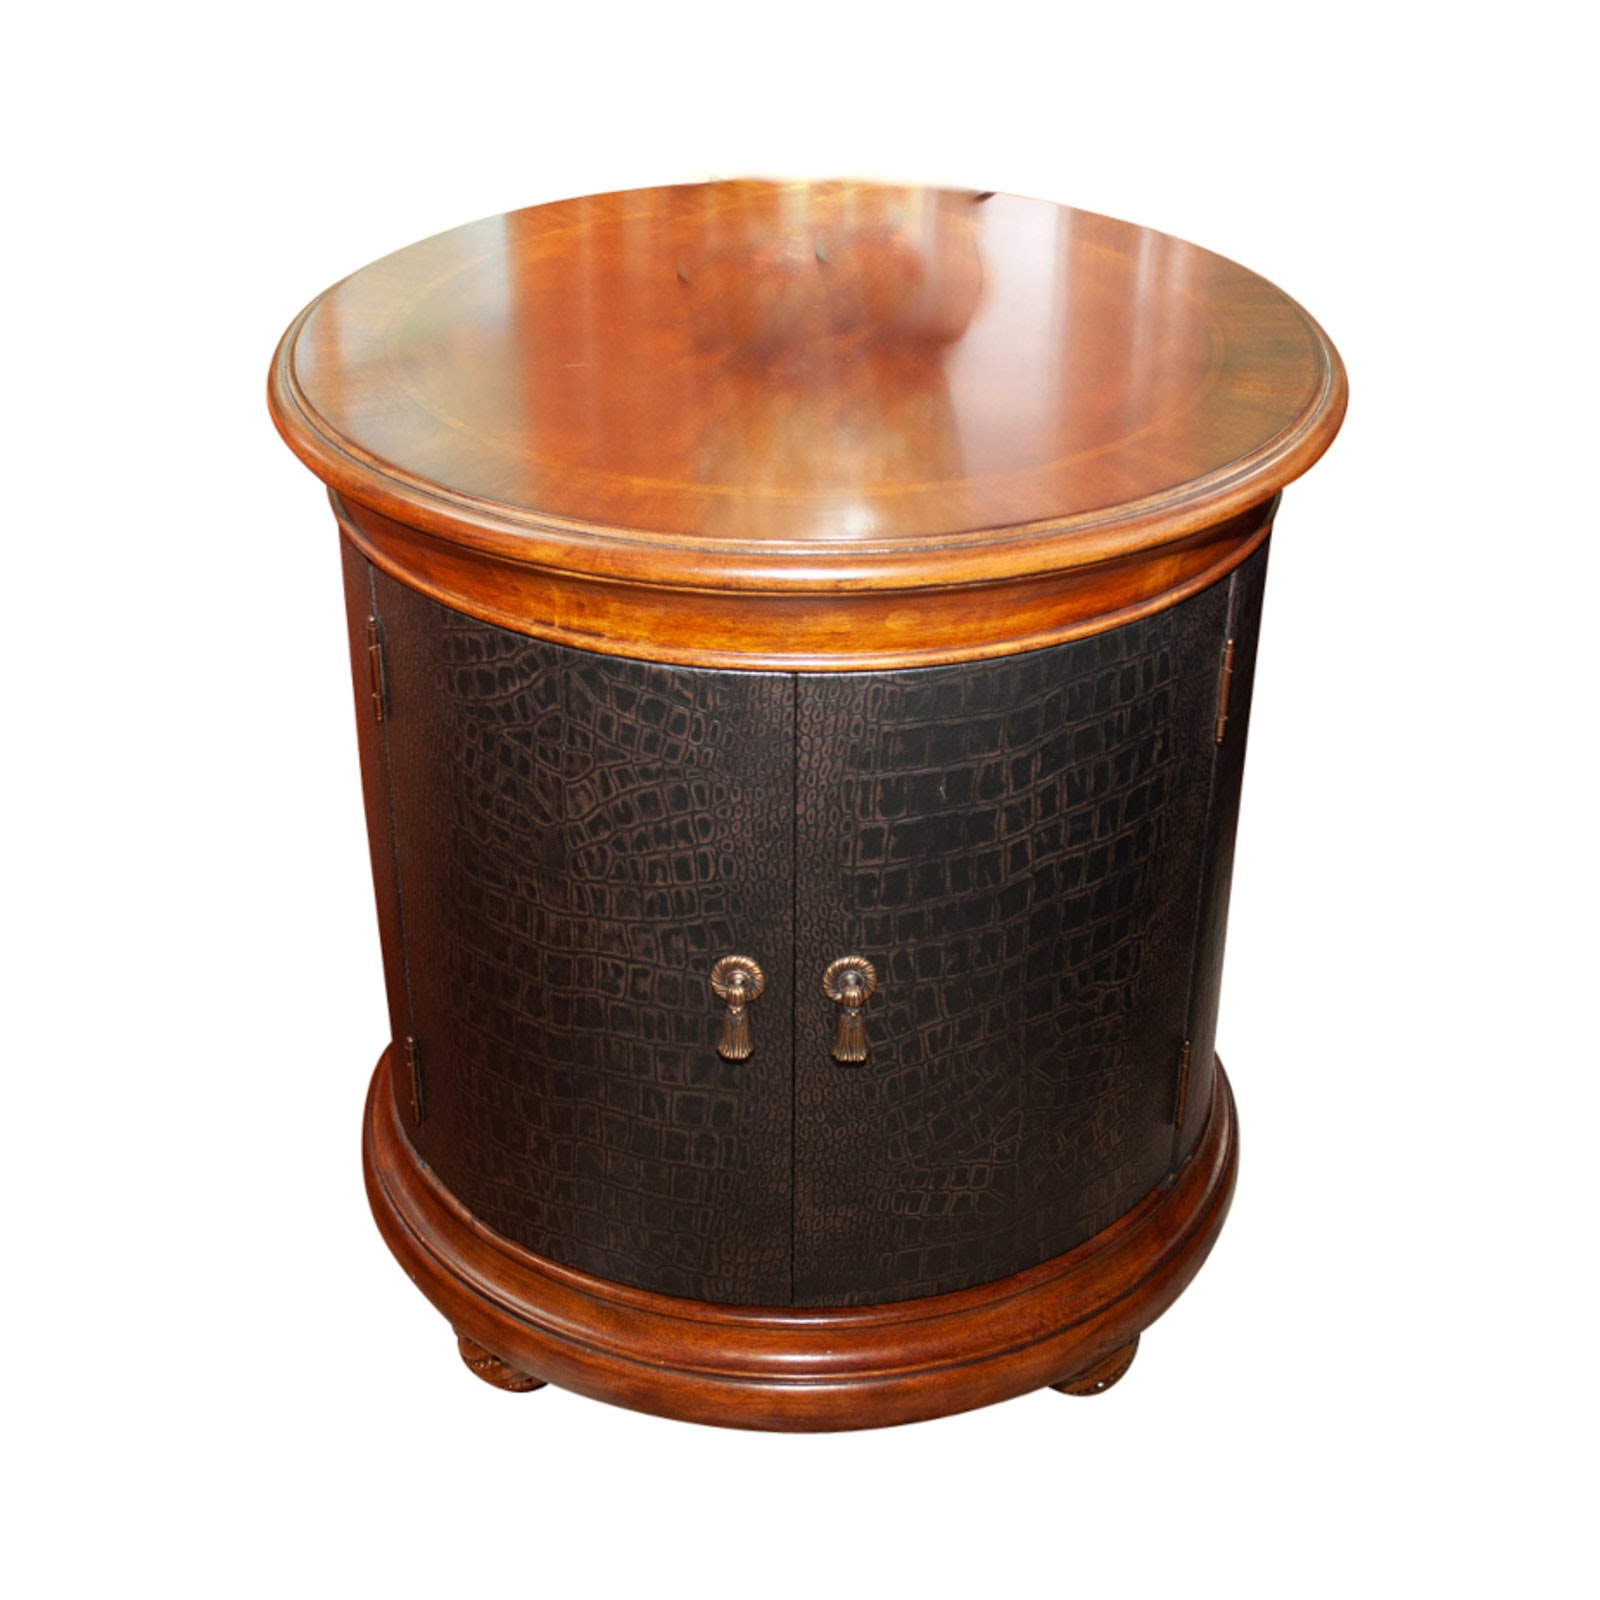 Contemporary Wood and Faux Leather Round Side Table